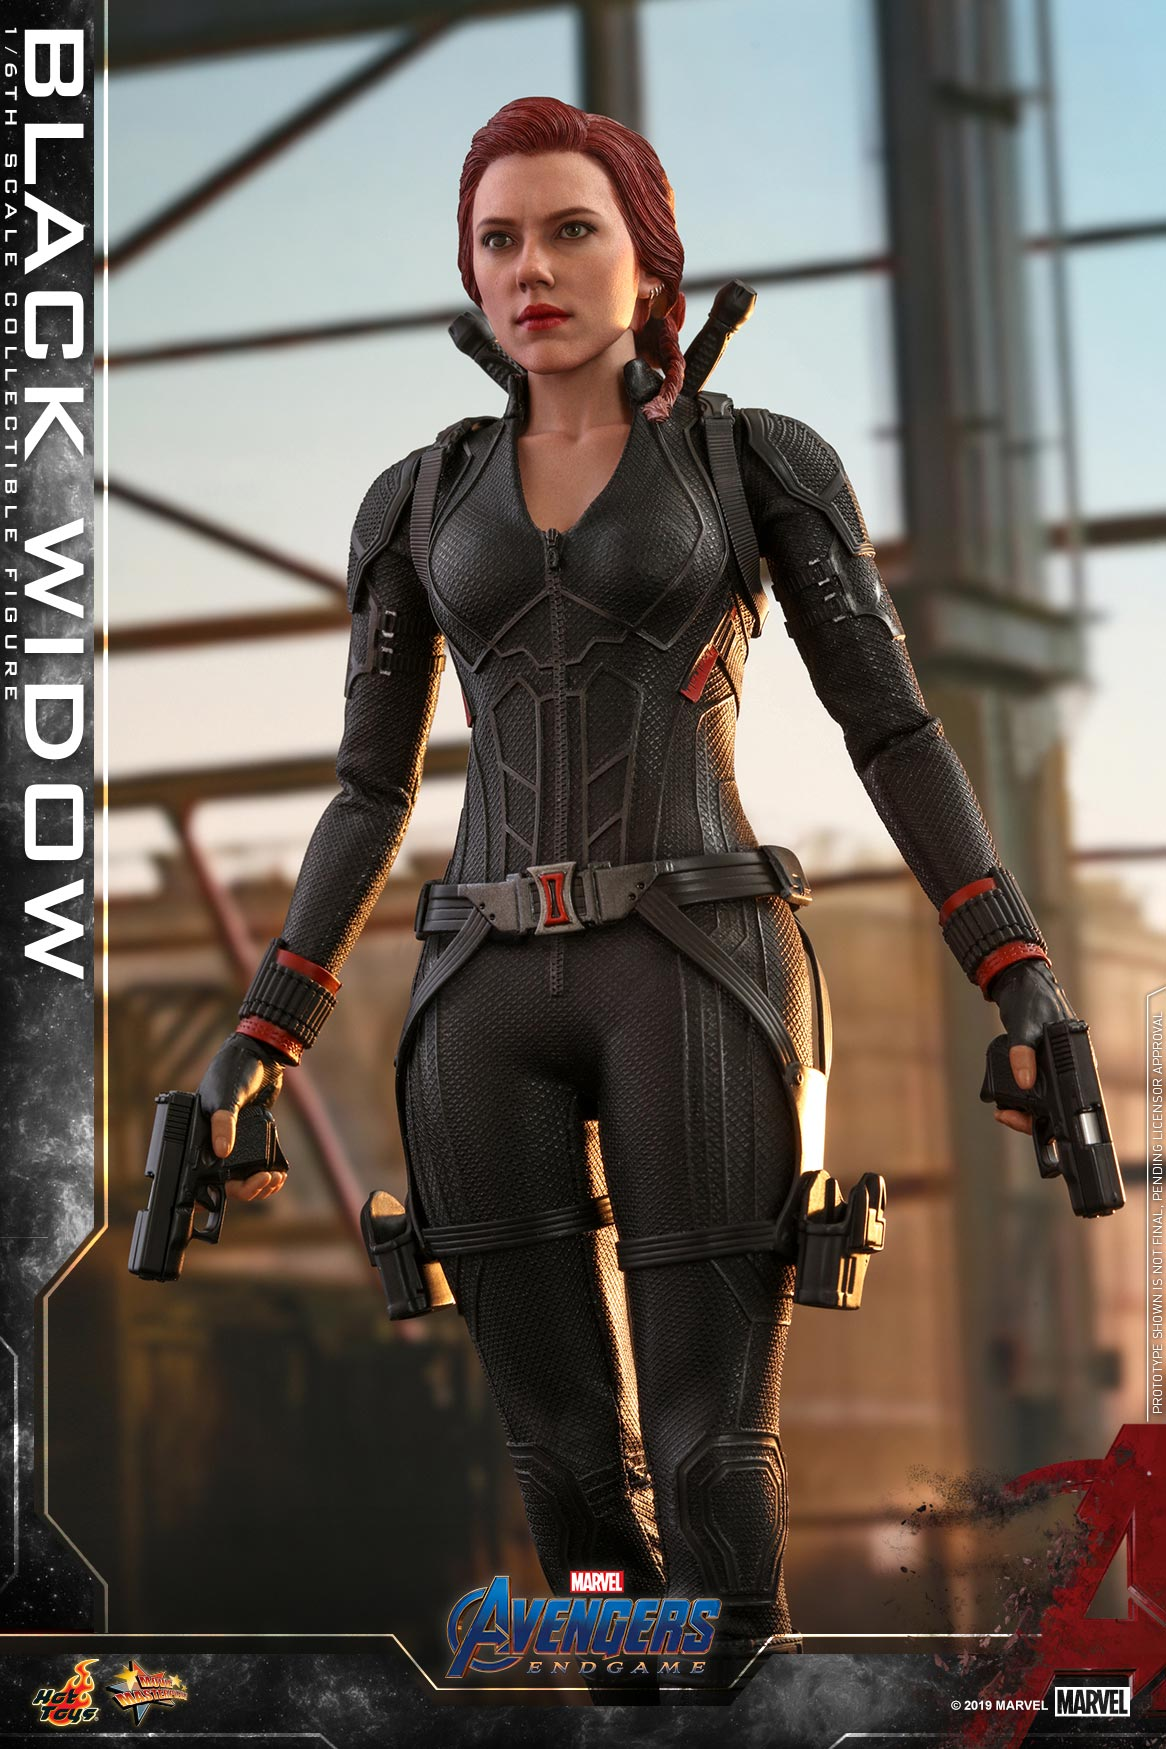 Hot-Toys---Avengers-4---Black-Widow-collectible-figure_PR11